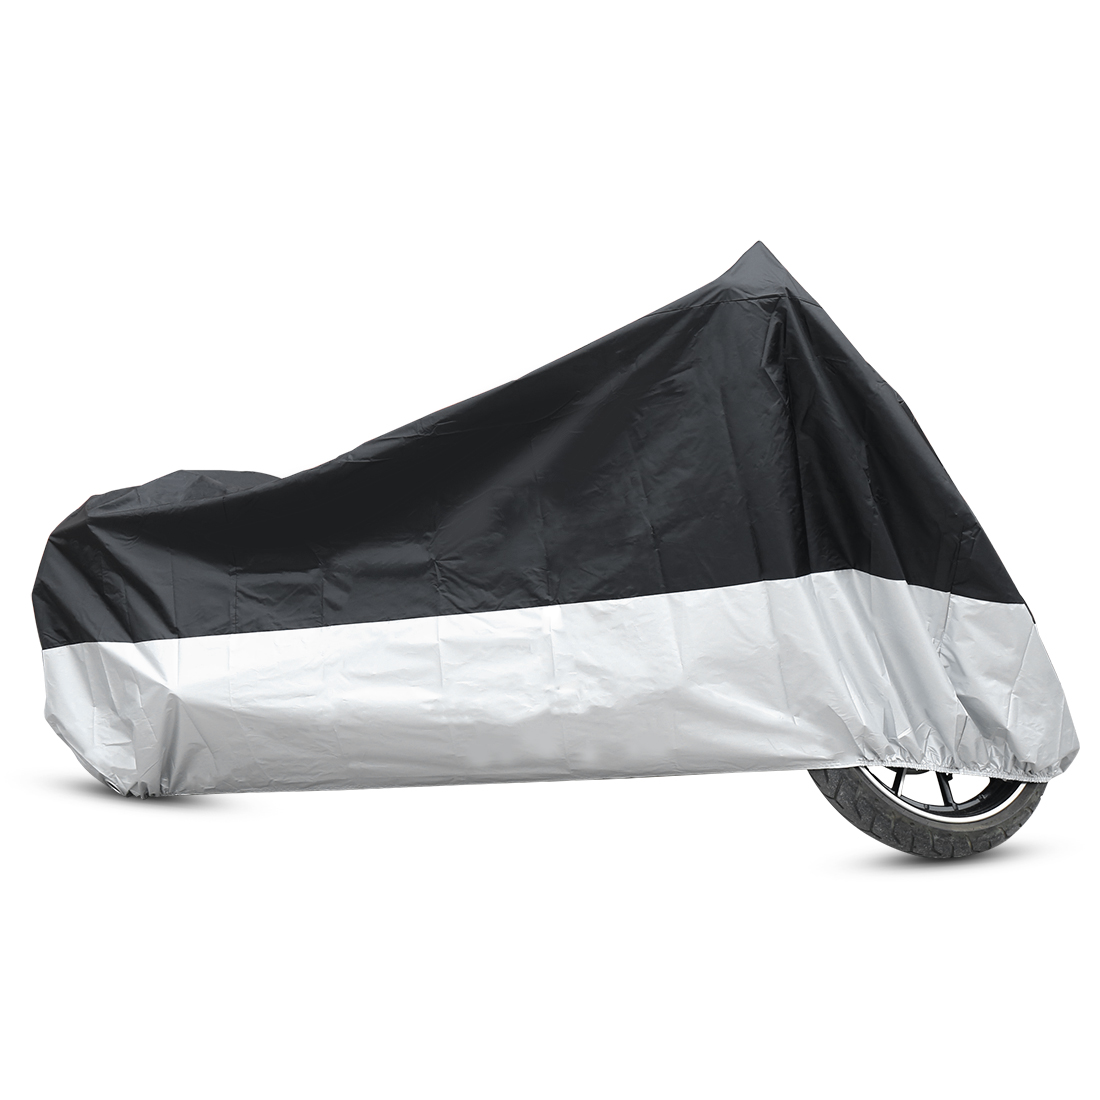 XL 180T Rain Dust Motorcycle Cover Black+Silver Outdoor Waterproof UV Protector